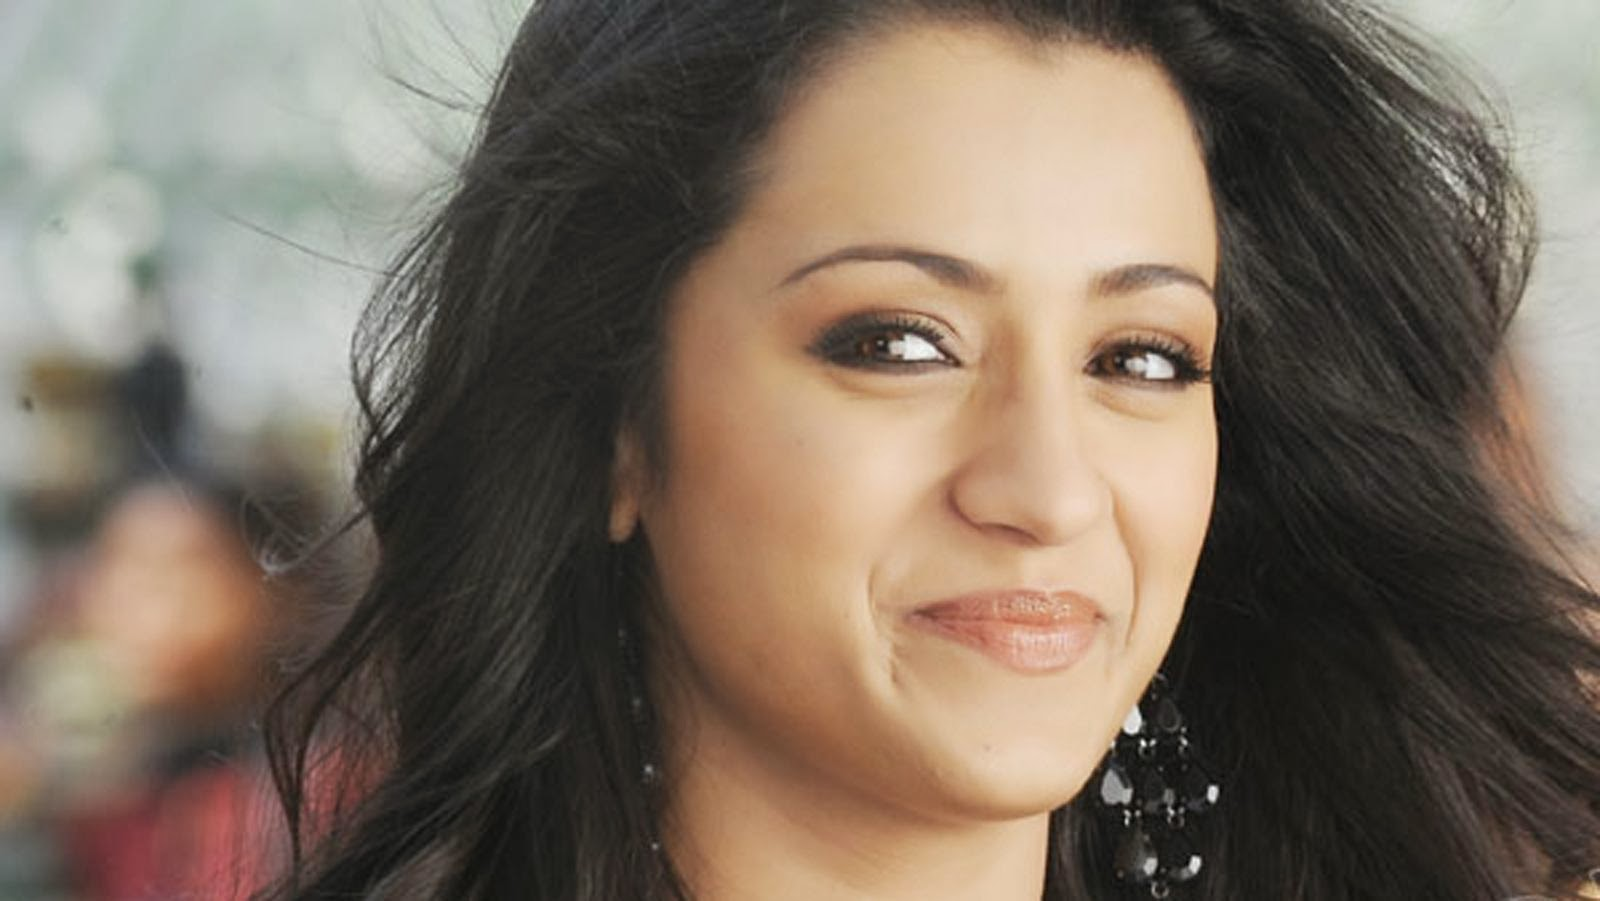 Cute smiling HD Trisha HD wallpaper for download